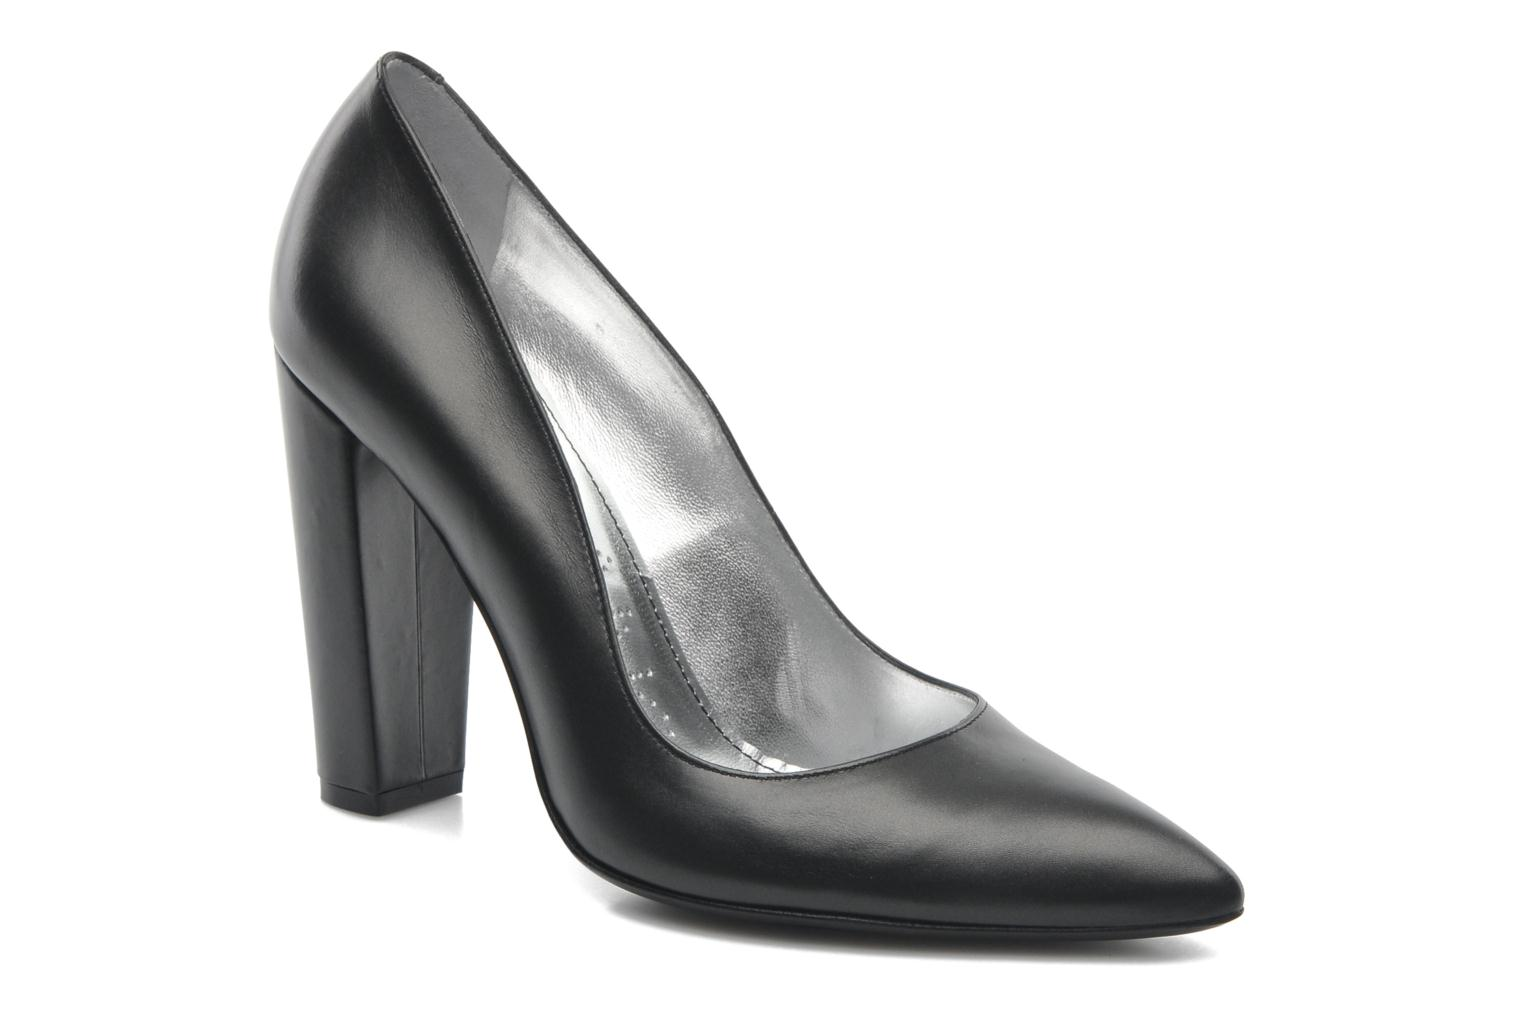 Ety 9 pumps Monet Metal